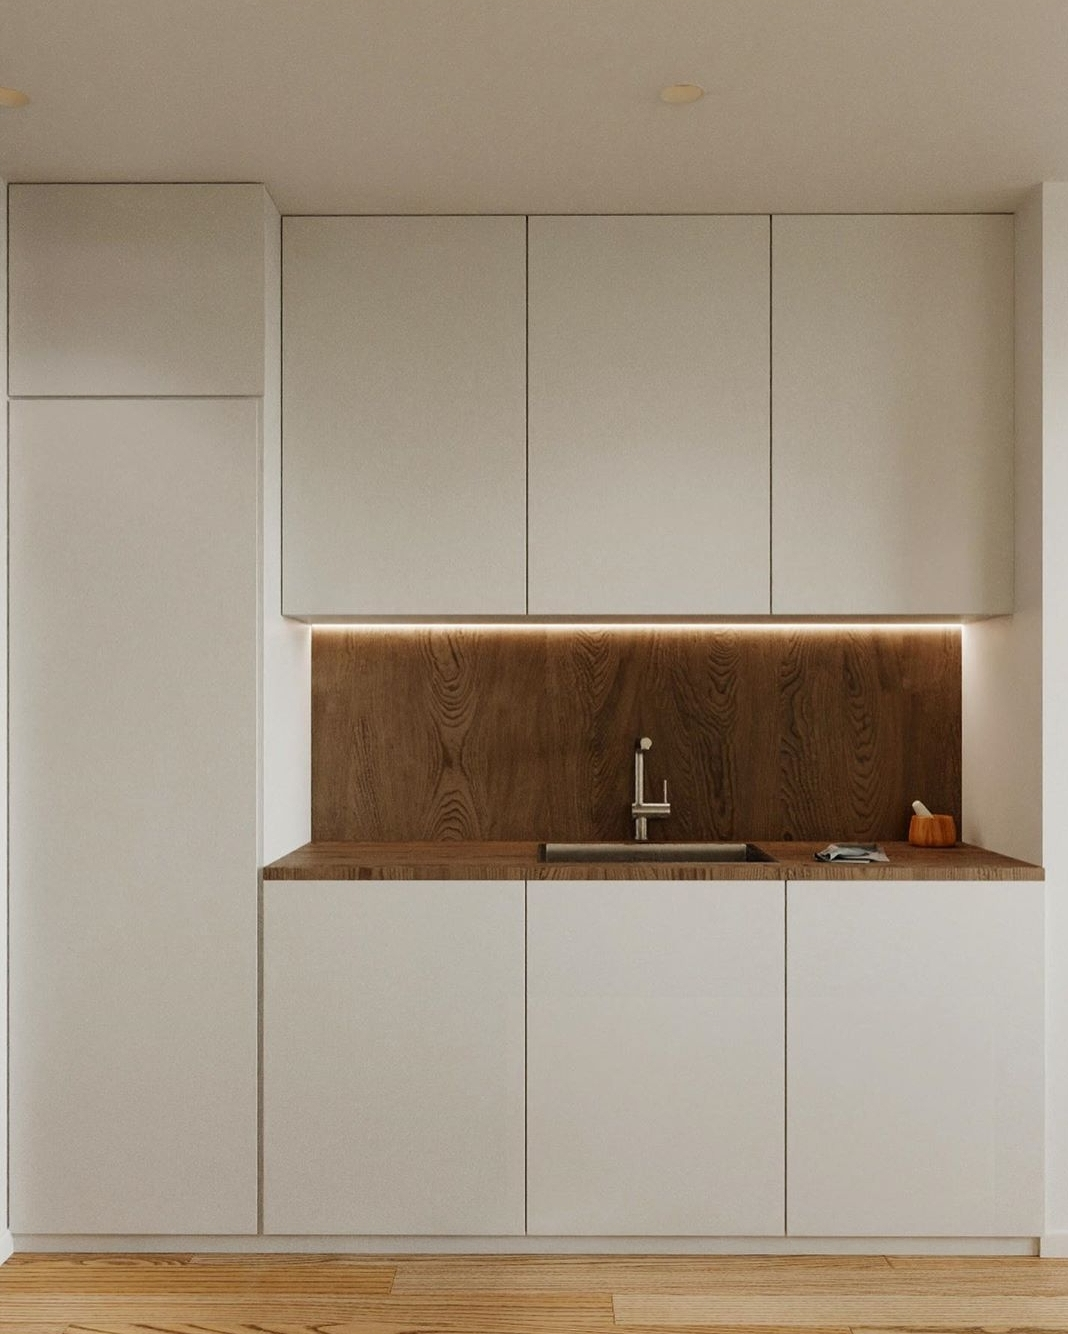 Ideas for kitchen in small space